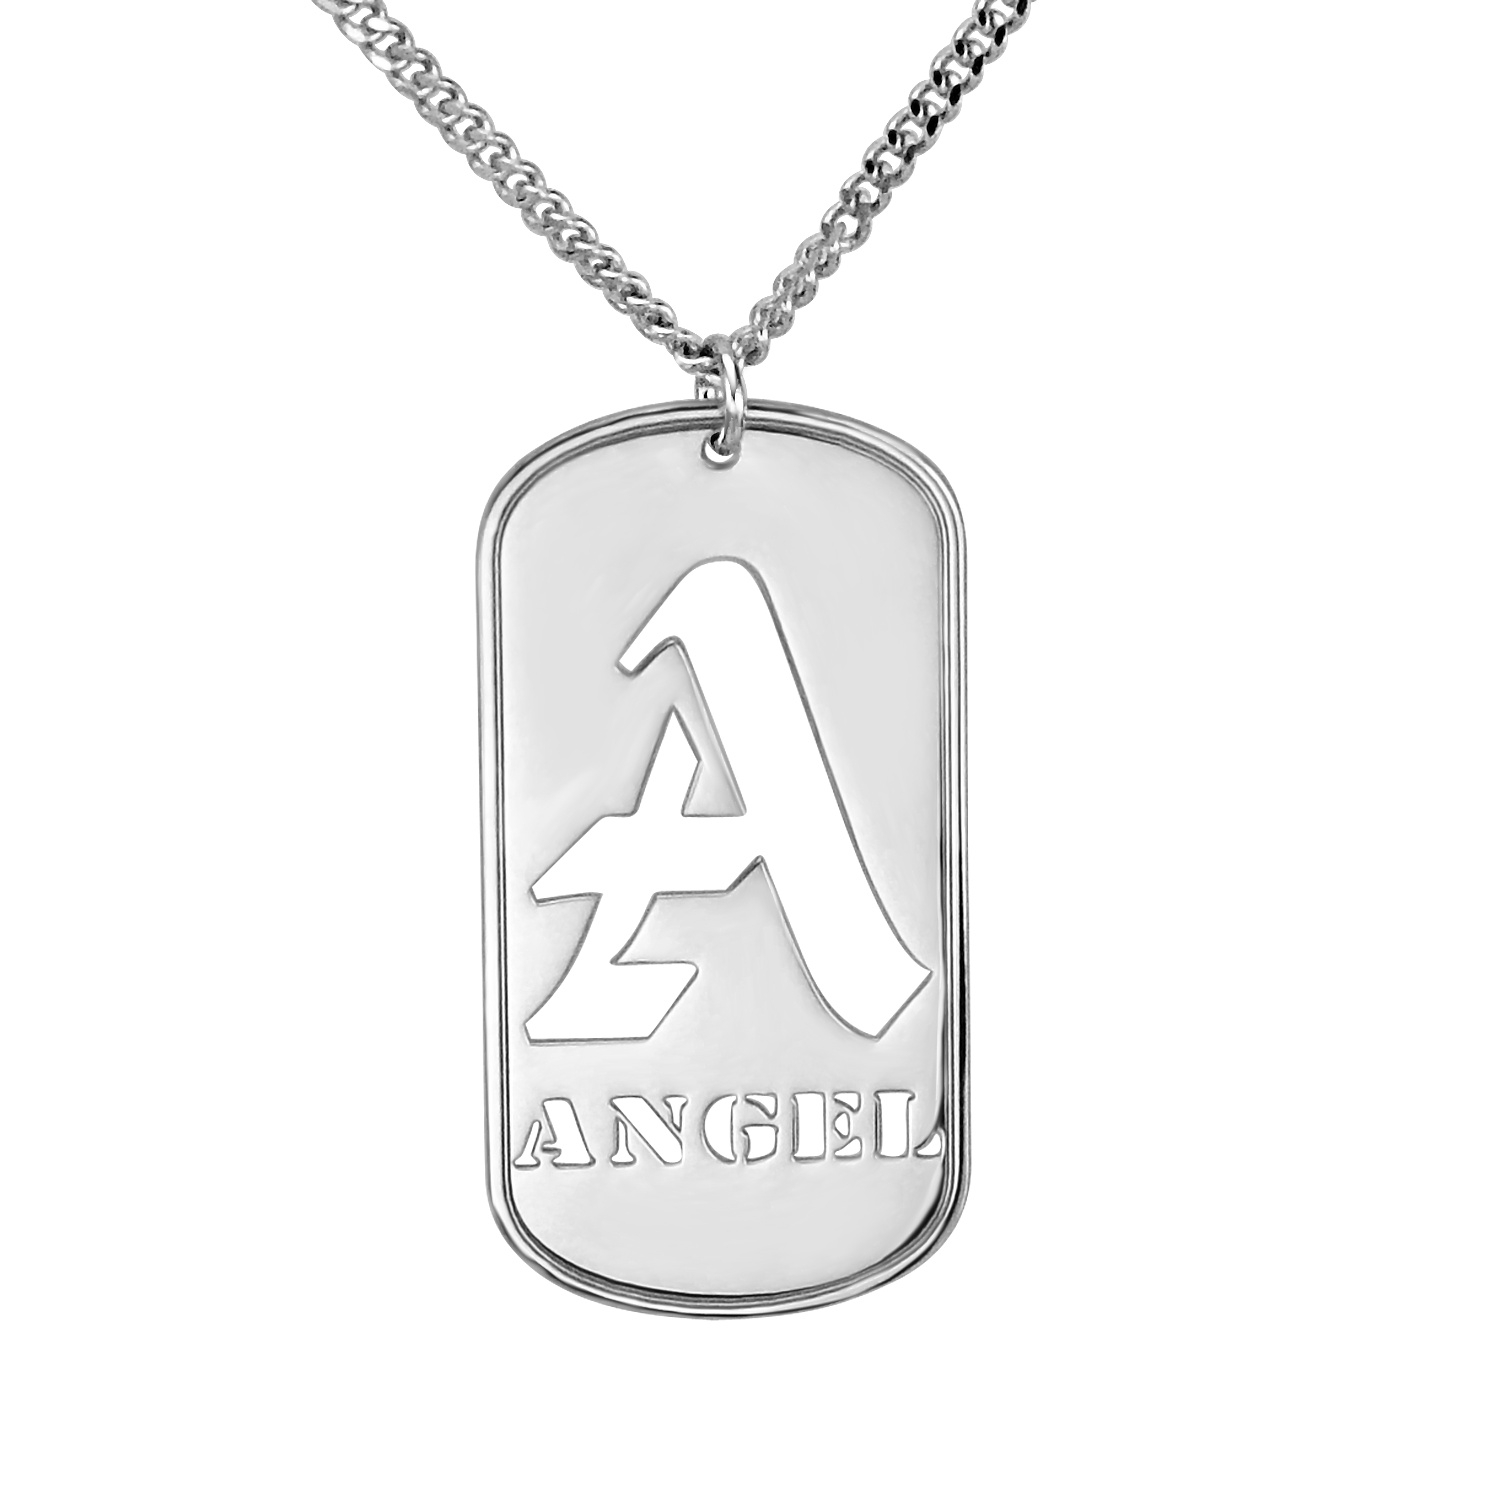 products mens name womens sports date memorial baseball funeral necklaces necklace penny and jewelry